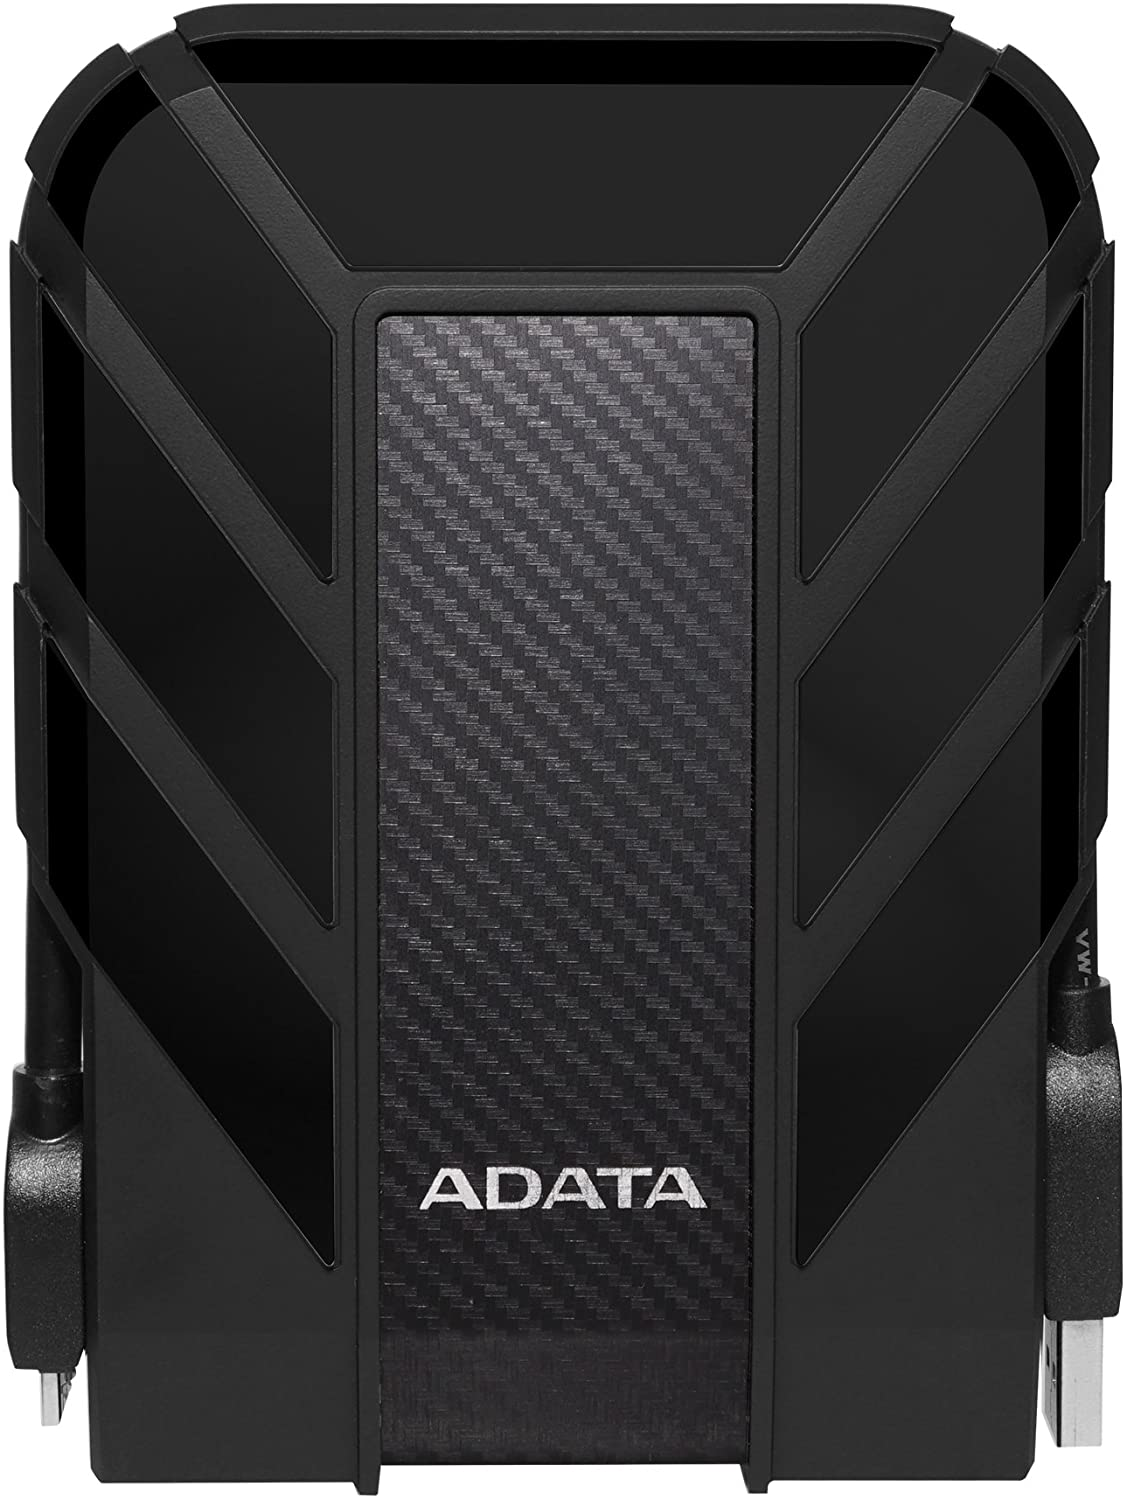 ADATA HD710 Pro 2TB USB 3.1 IP68 Waterproof/Shockproof/Dustproof Ruggedized External Hard Drive, Black (AHD710P-2TU31-CBK)